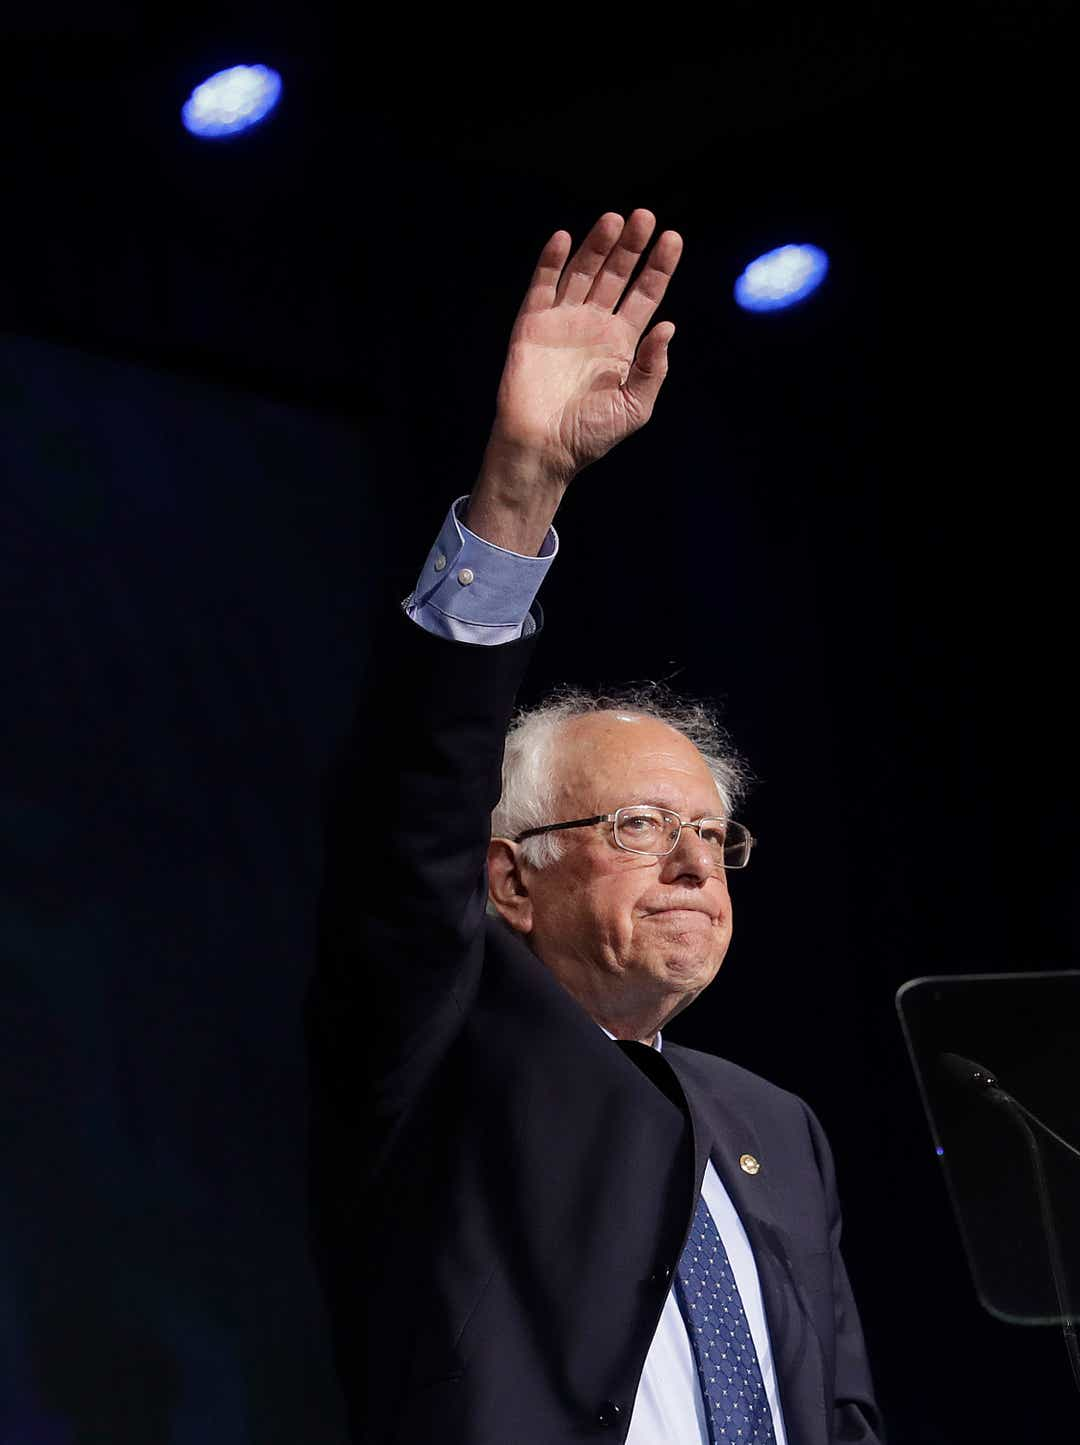 Bernie Sanders calls Walmart minimum wage 'grotesque' and 'absurd'